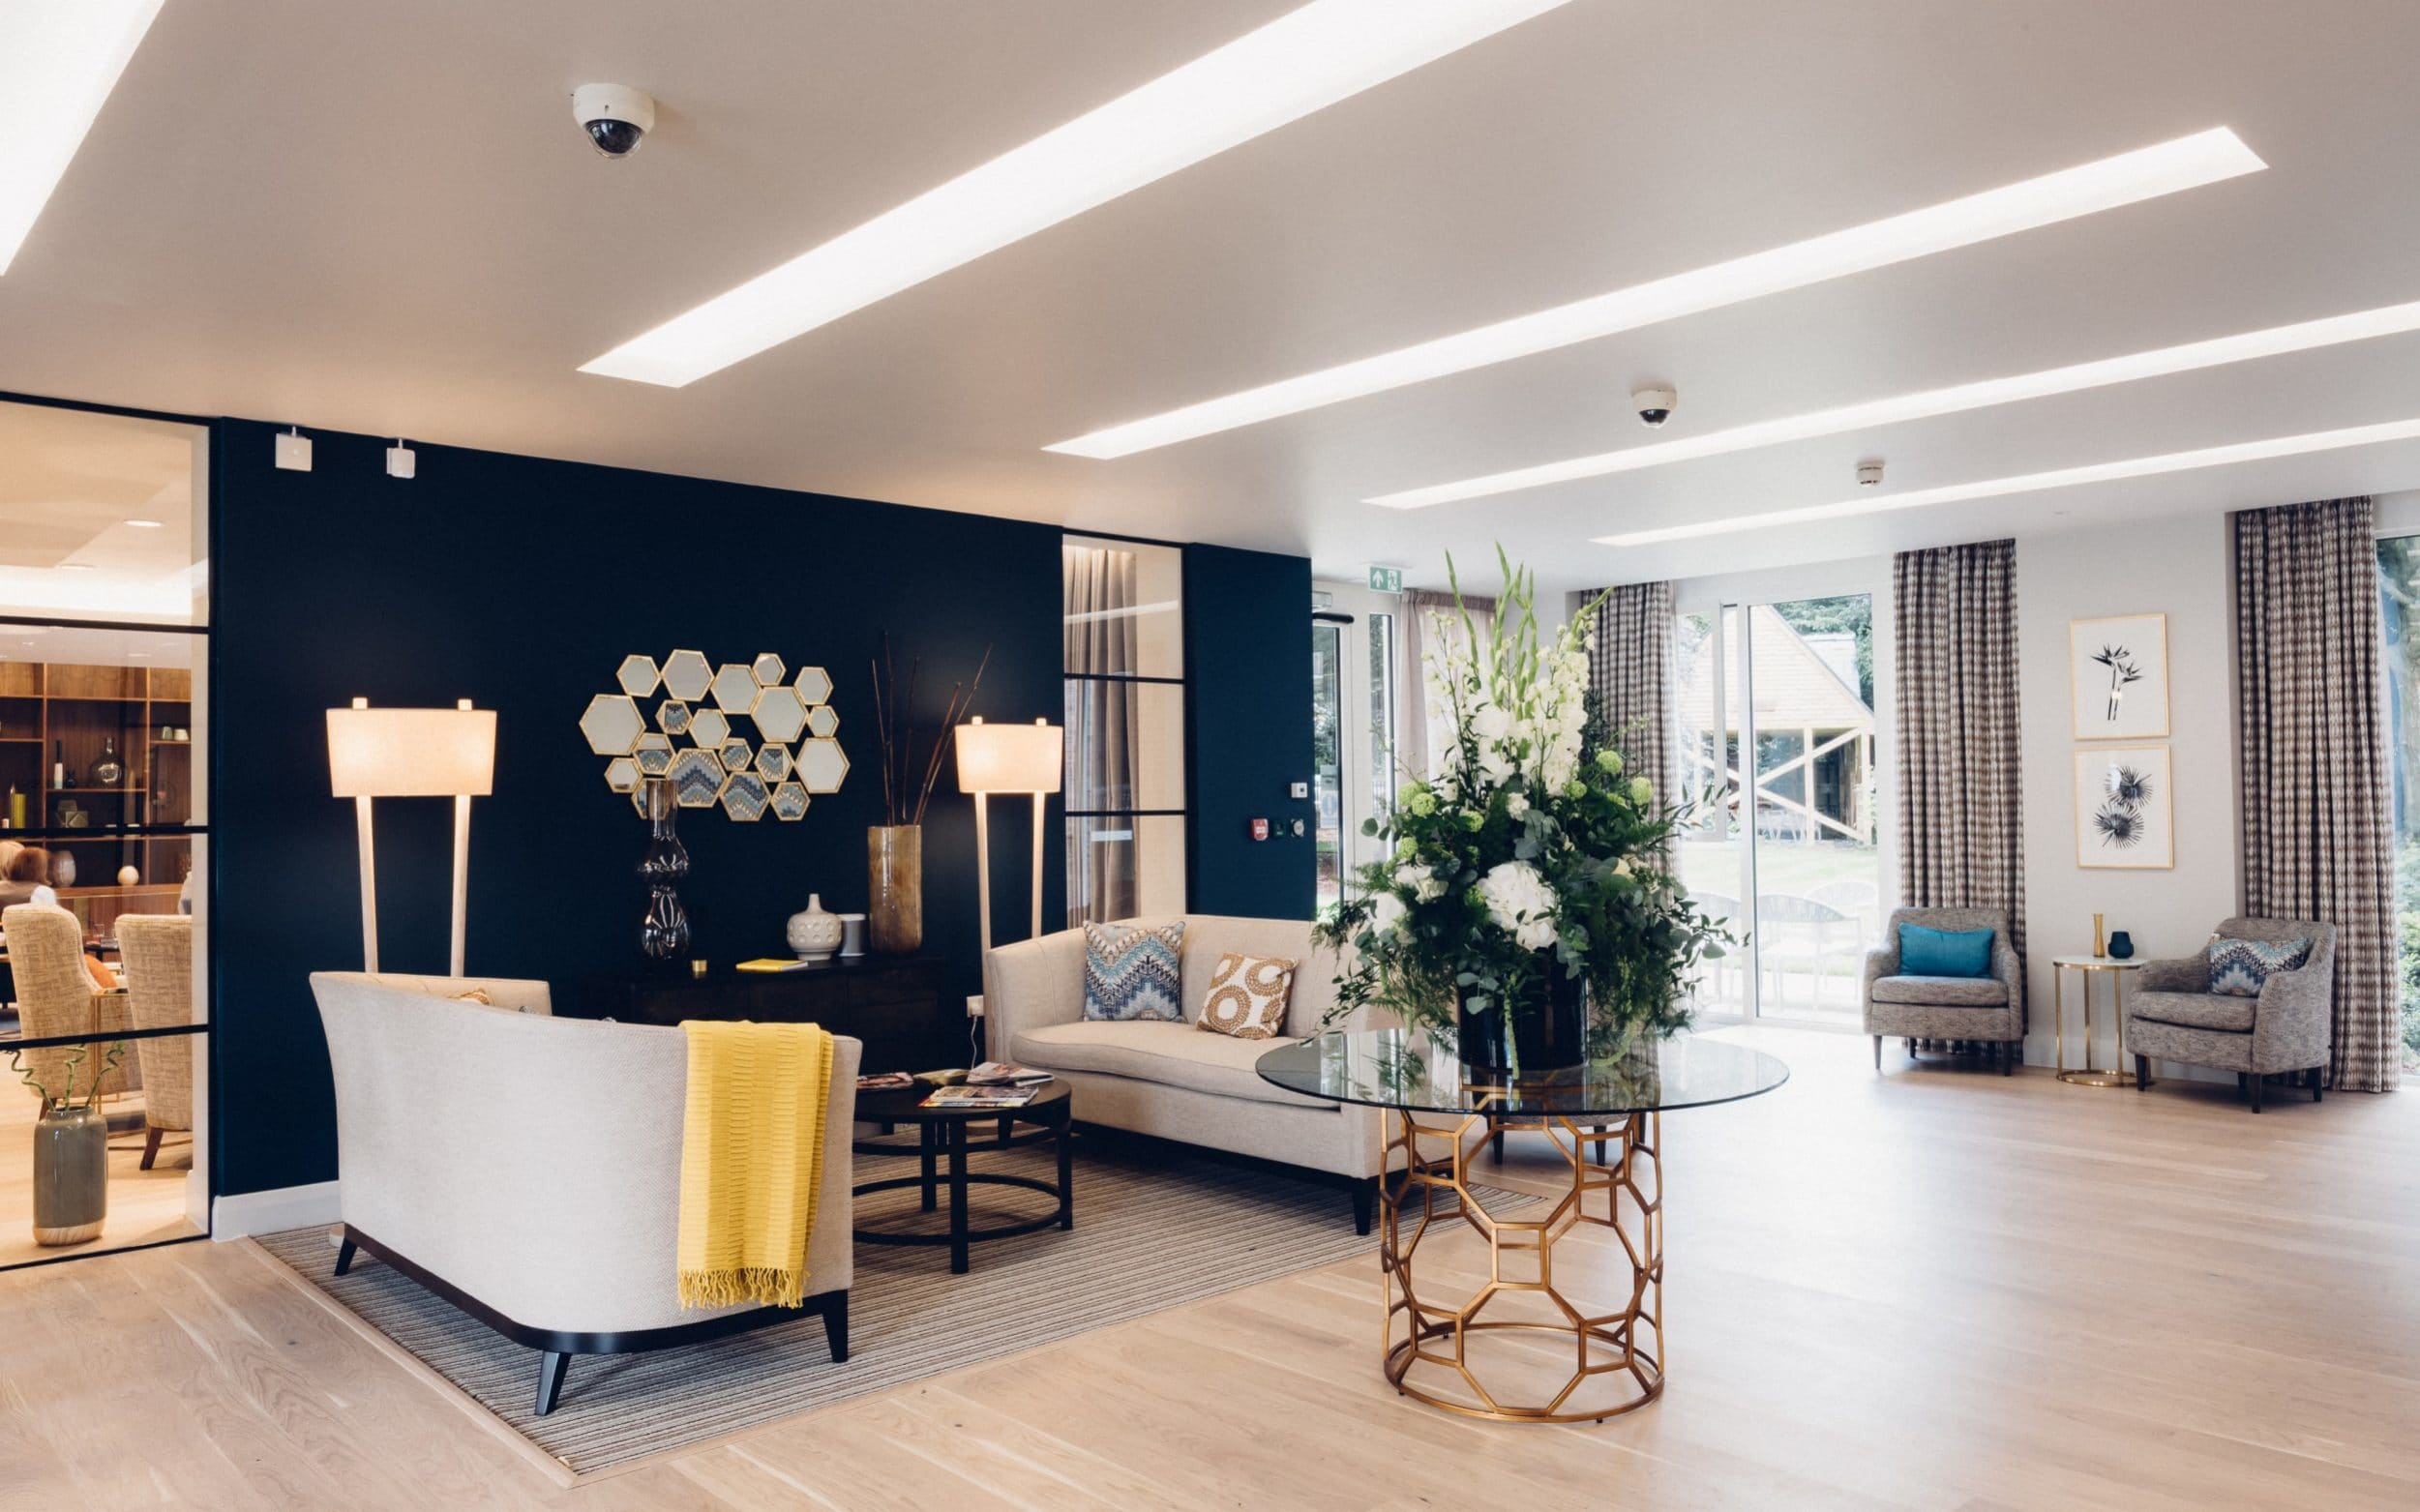 How developers are designing home interiors for ever-younger downsizers